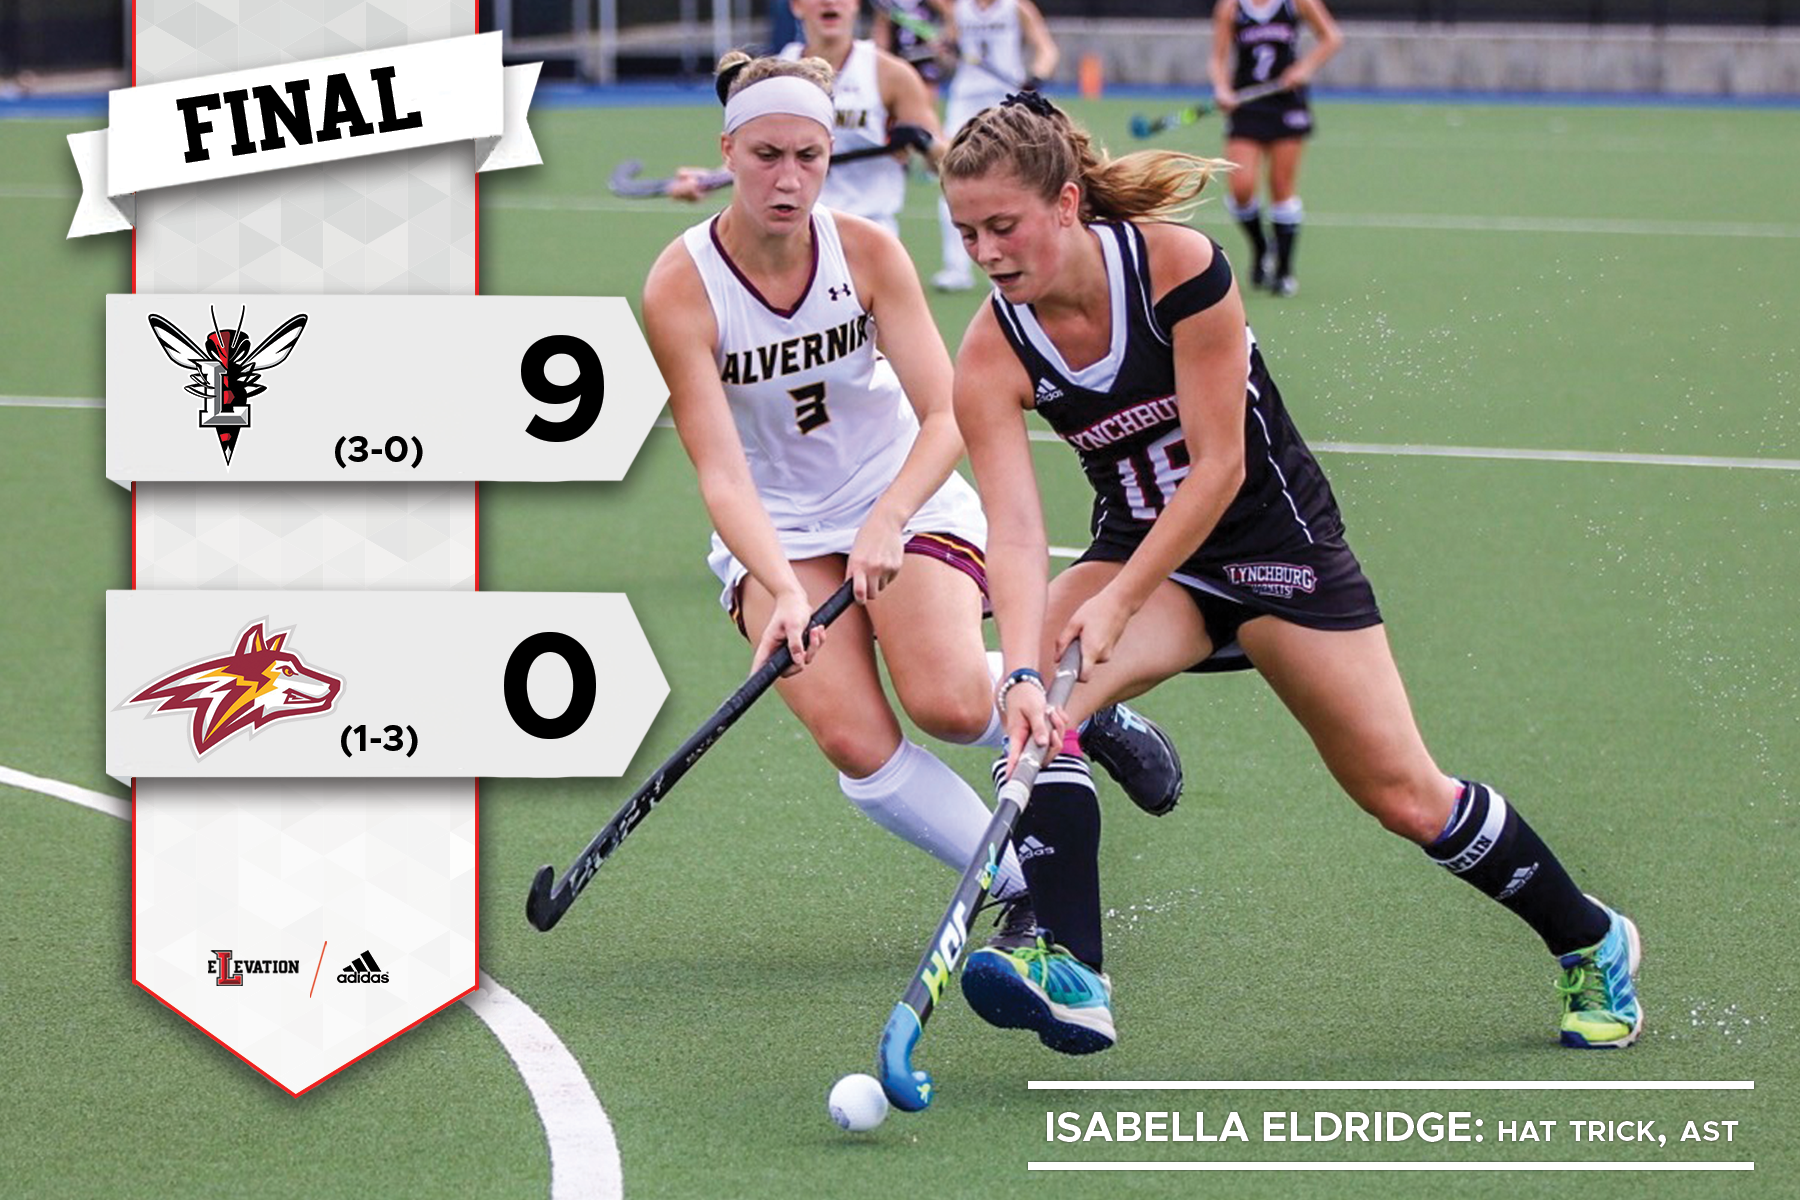 Izzy Eldridge beats a defender in a field hockey game. Graphic showing 9-0 final score Lynchburg and Alvernia logos.